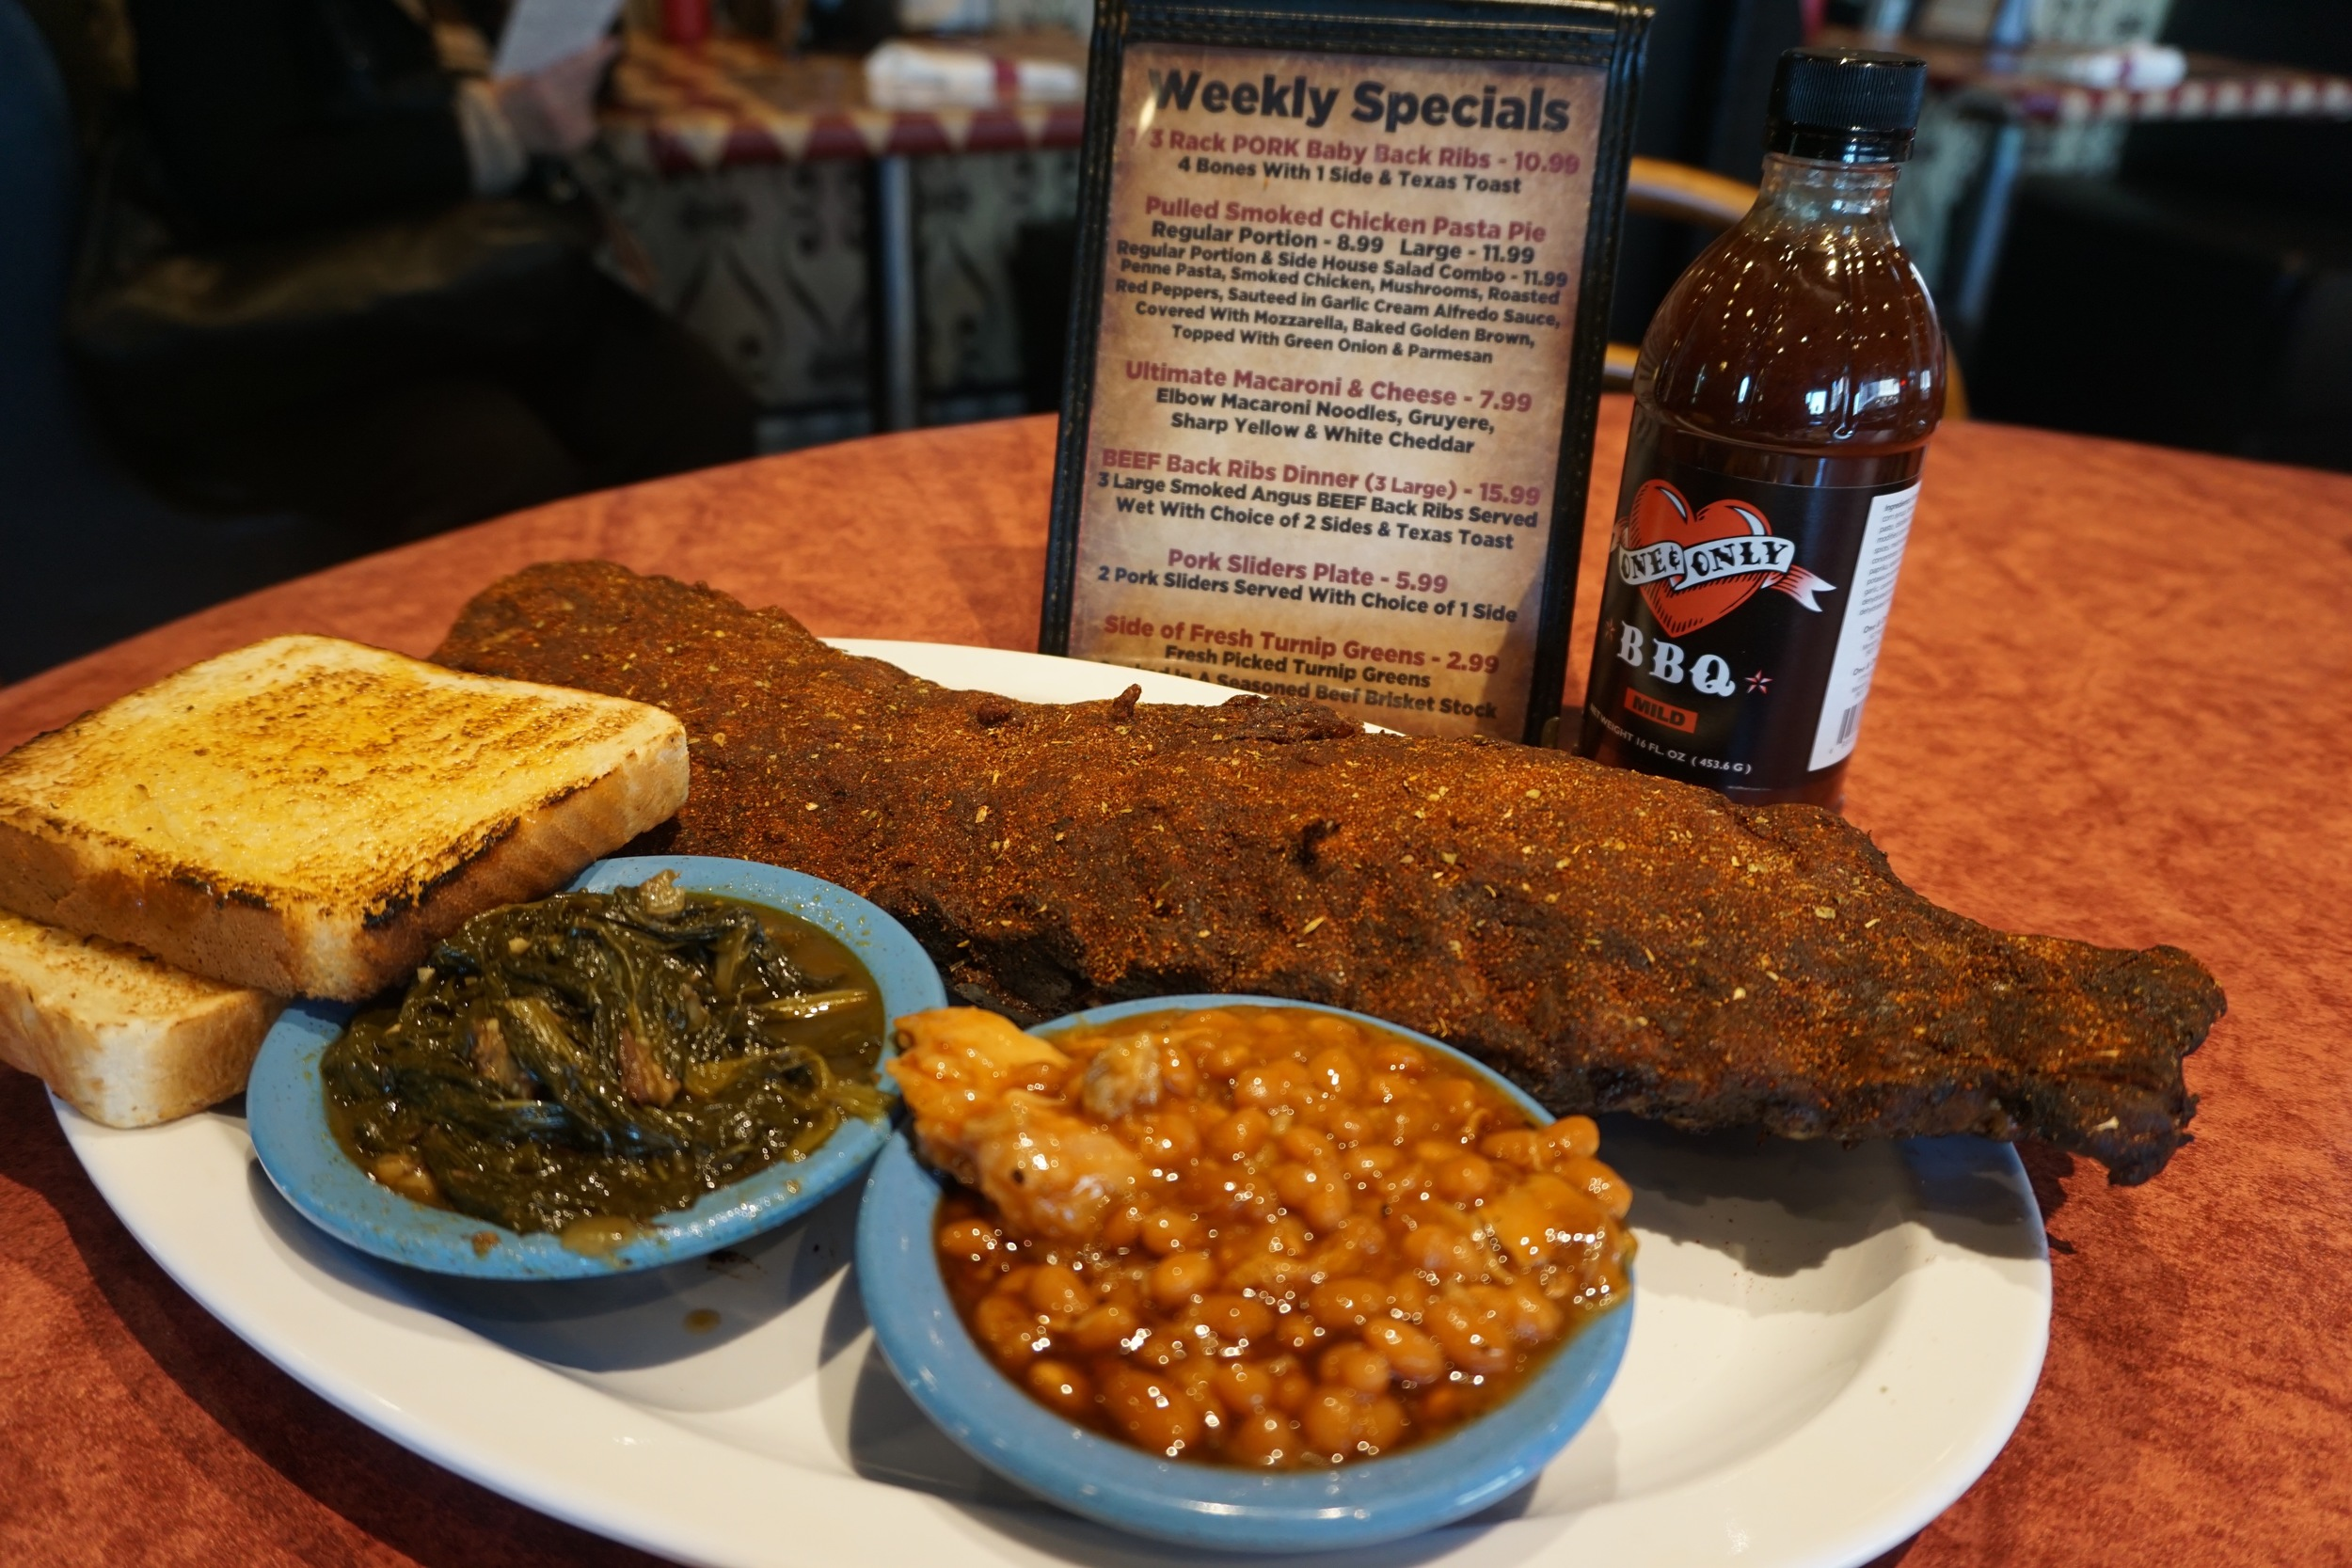 Dry rub ribs with baked beans and greens!